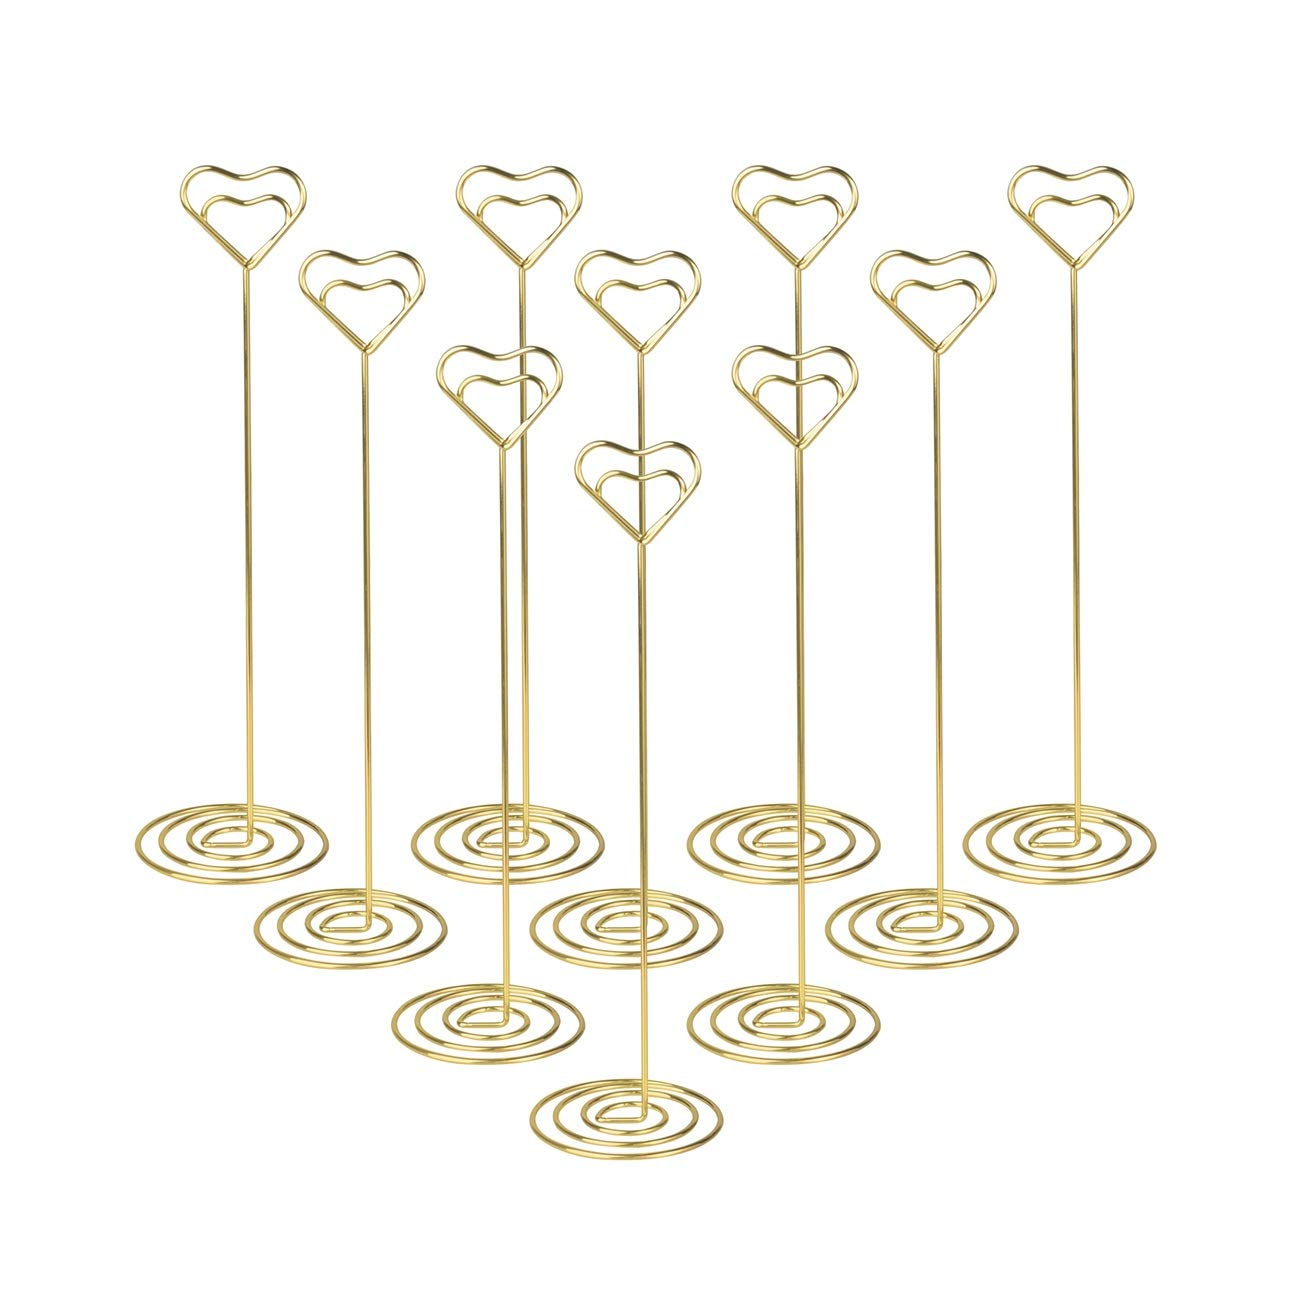 10pcs Table Number Holder Gold Wedding Place Card Holder, Picture Photo Holders 8.6 Inch Tall - Note Menu Memo Clips for Party Gatherings Volla